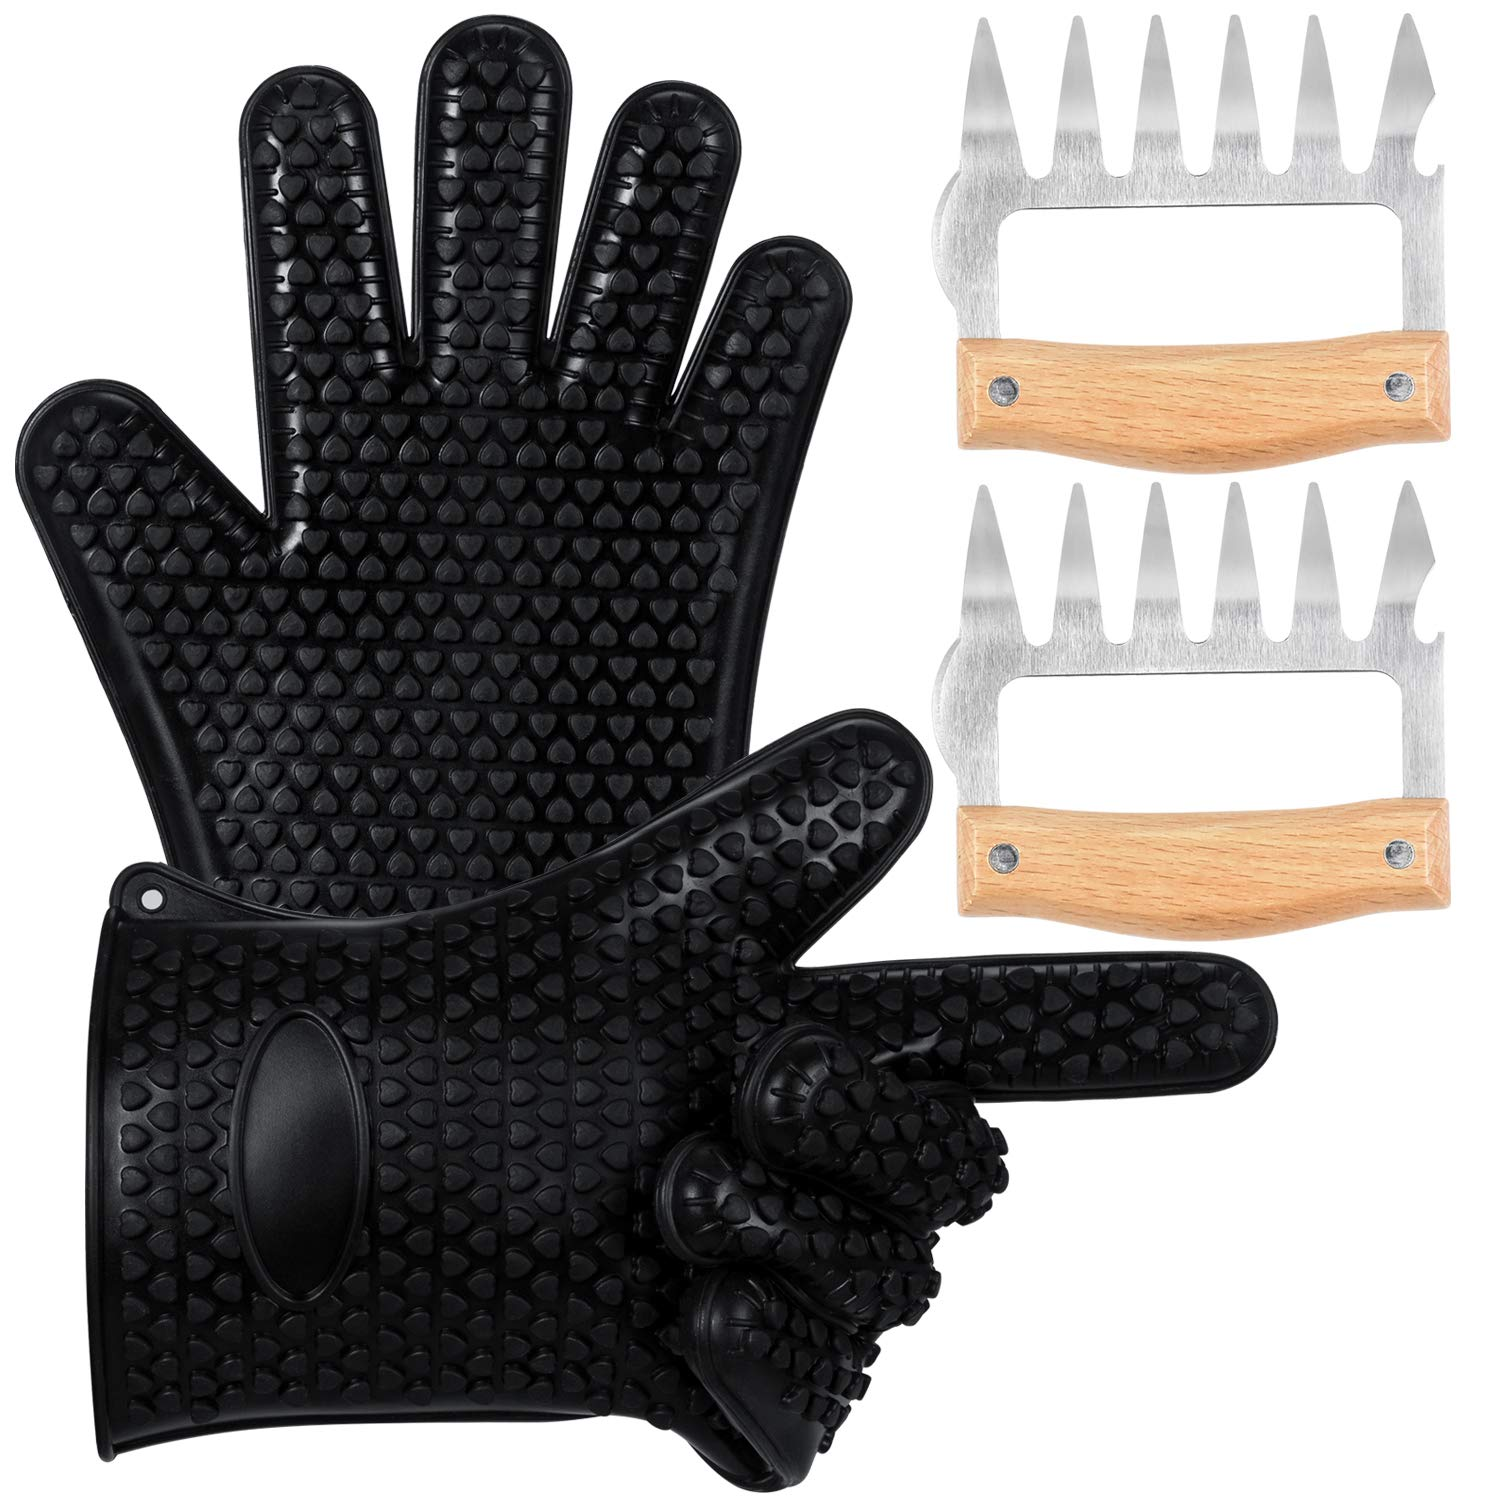 TyhoTech Silicone BBQ Gloves, Heat Resistant Grilling Oven Cooking Gloves Mitts Set with Stainless Steel Meat Shredder, Superior Value Premium Set for Cooking, Grilling, Baking, Barbecue (Black)